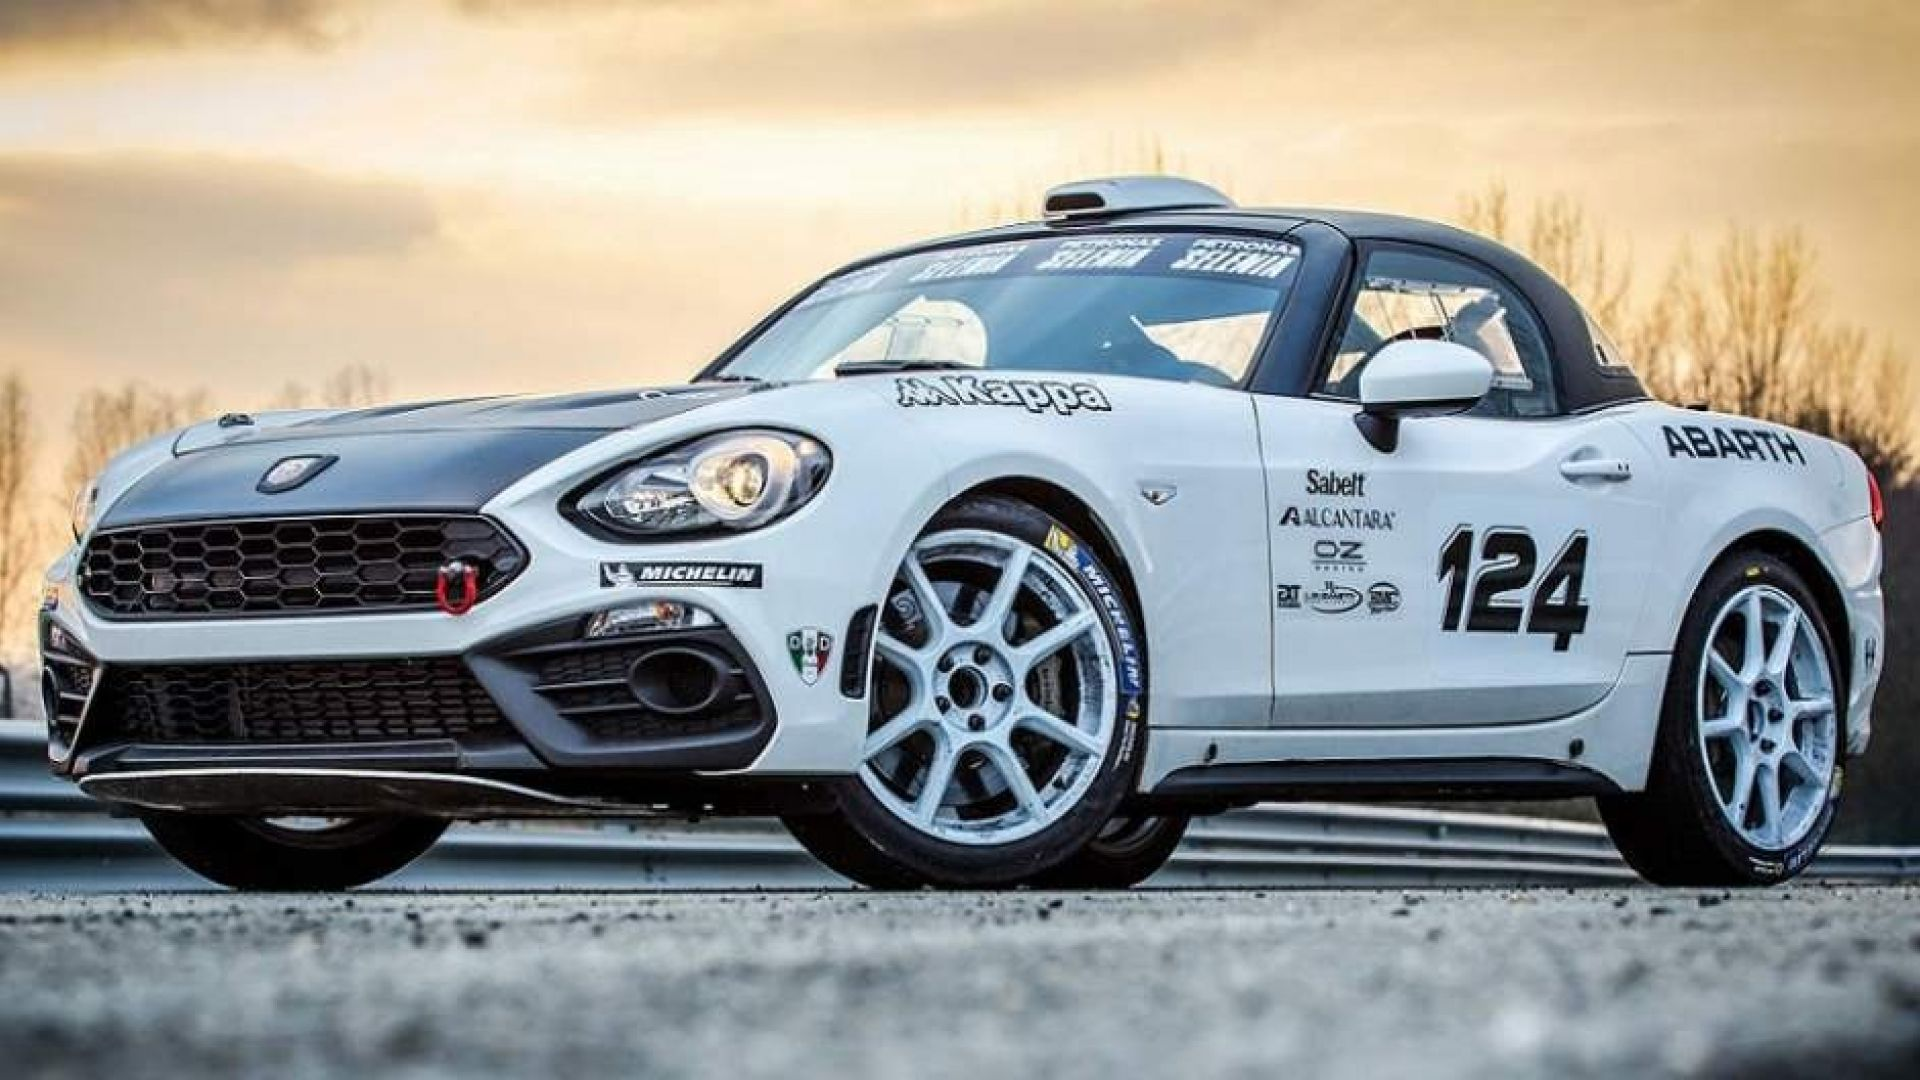 F A Ad Df Fcb as well Fiat Abarth together with Abarth Spider together with Fiat Abarth additionally . on fiat spider 124 abarth rally